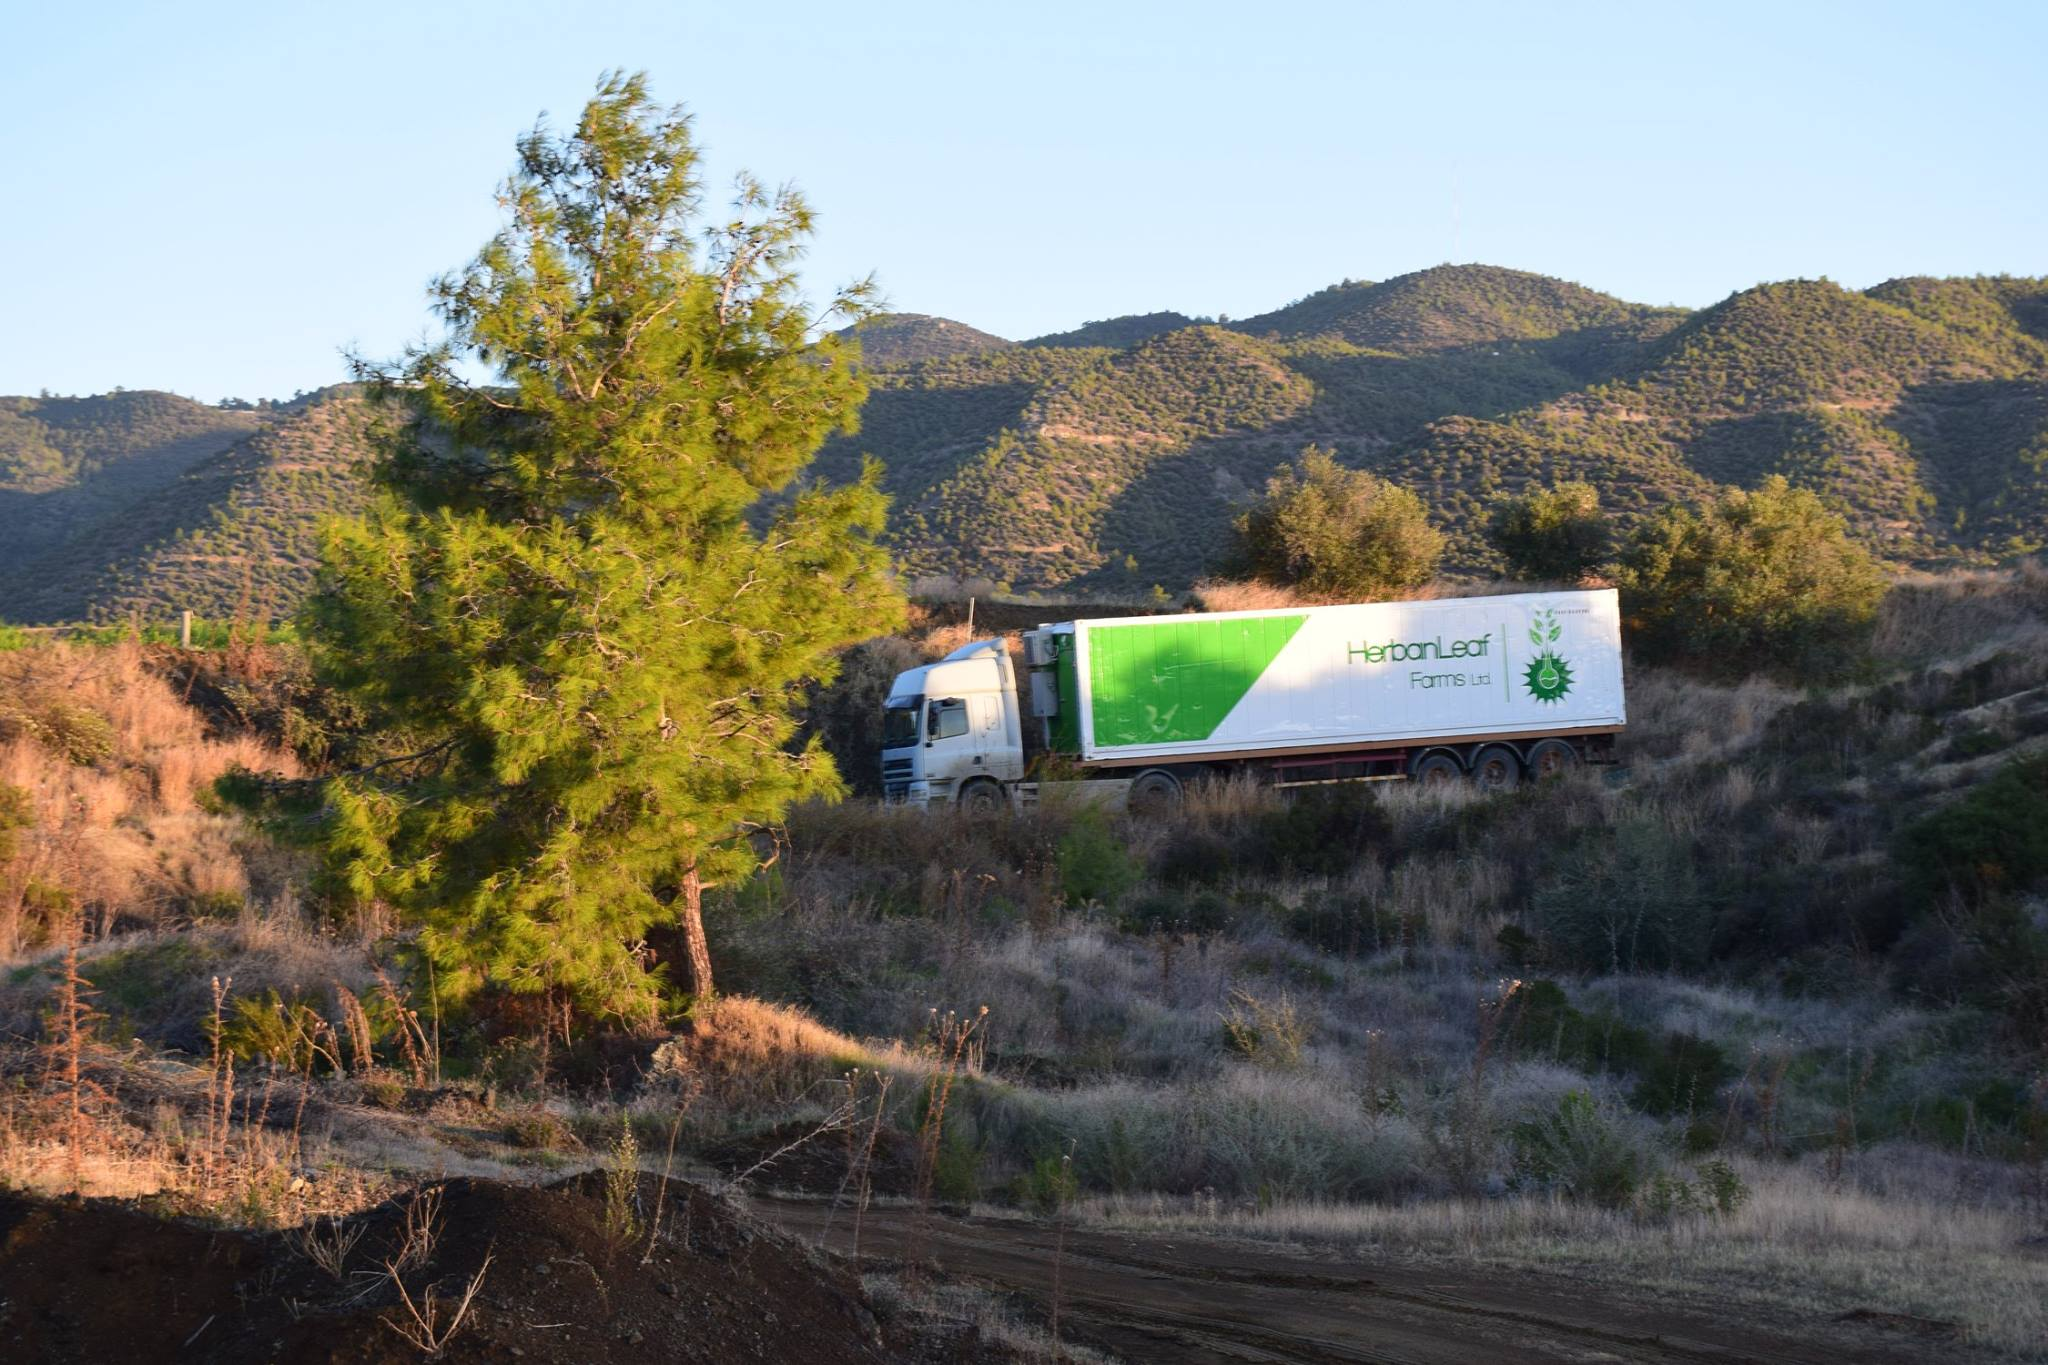 Farm delivery in Cyprus for HerbanLeaf Farms